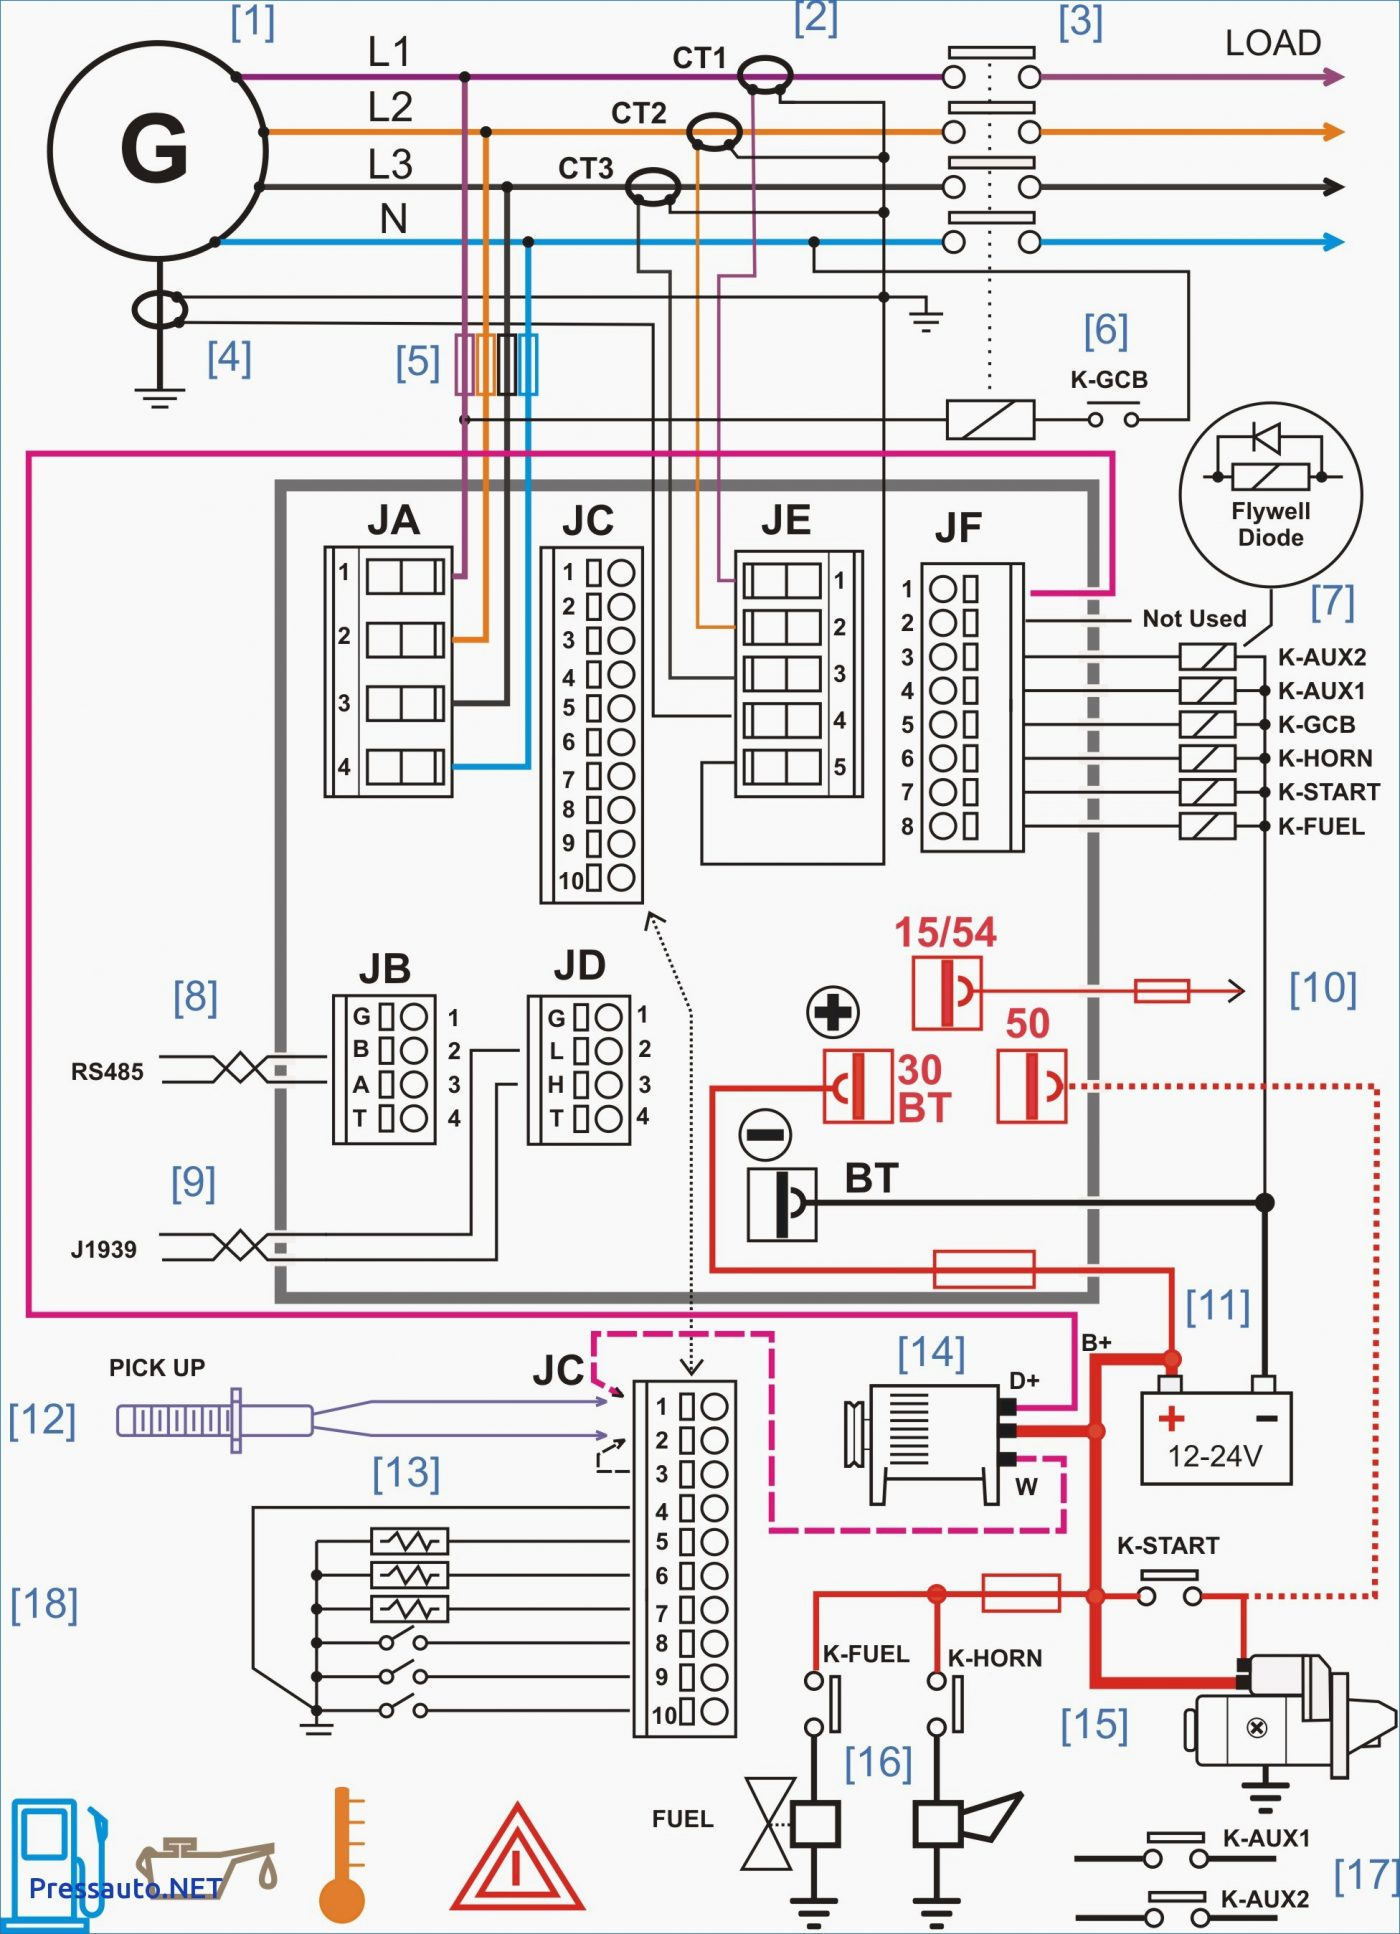 Ace Wiring Diagram - 1995 Ford F150 Xlt Stereo Wiring Diagram List Mega  Schematic11.kvcb.institut-triskell-de-diamant.fr